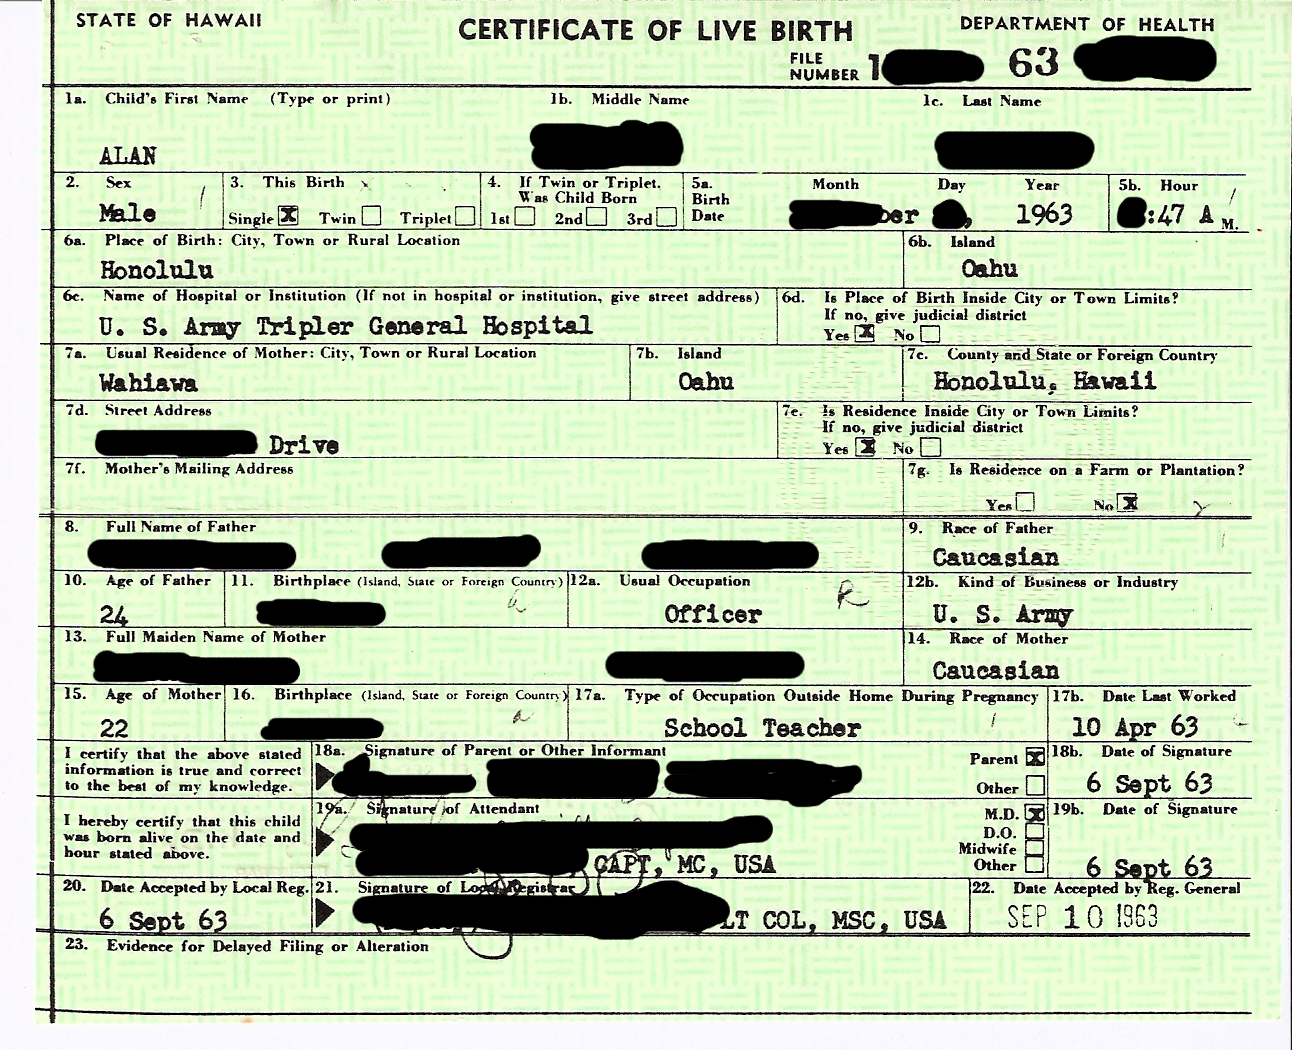 Birth Certificate - Obama Conspiracy Theories